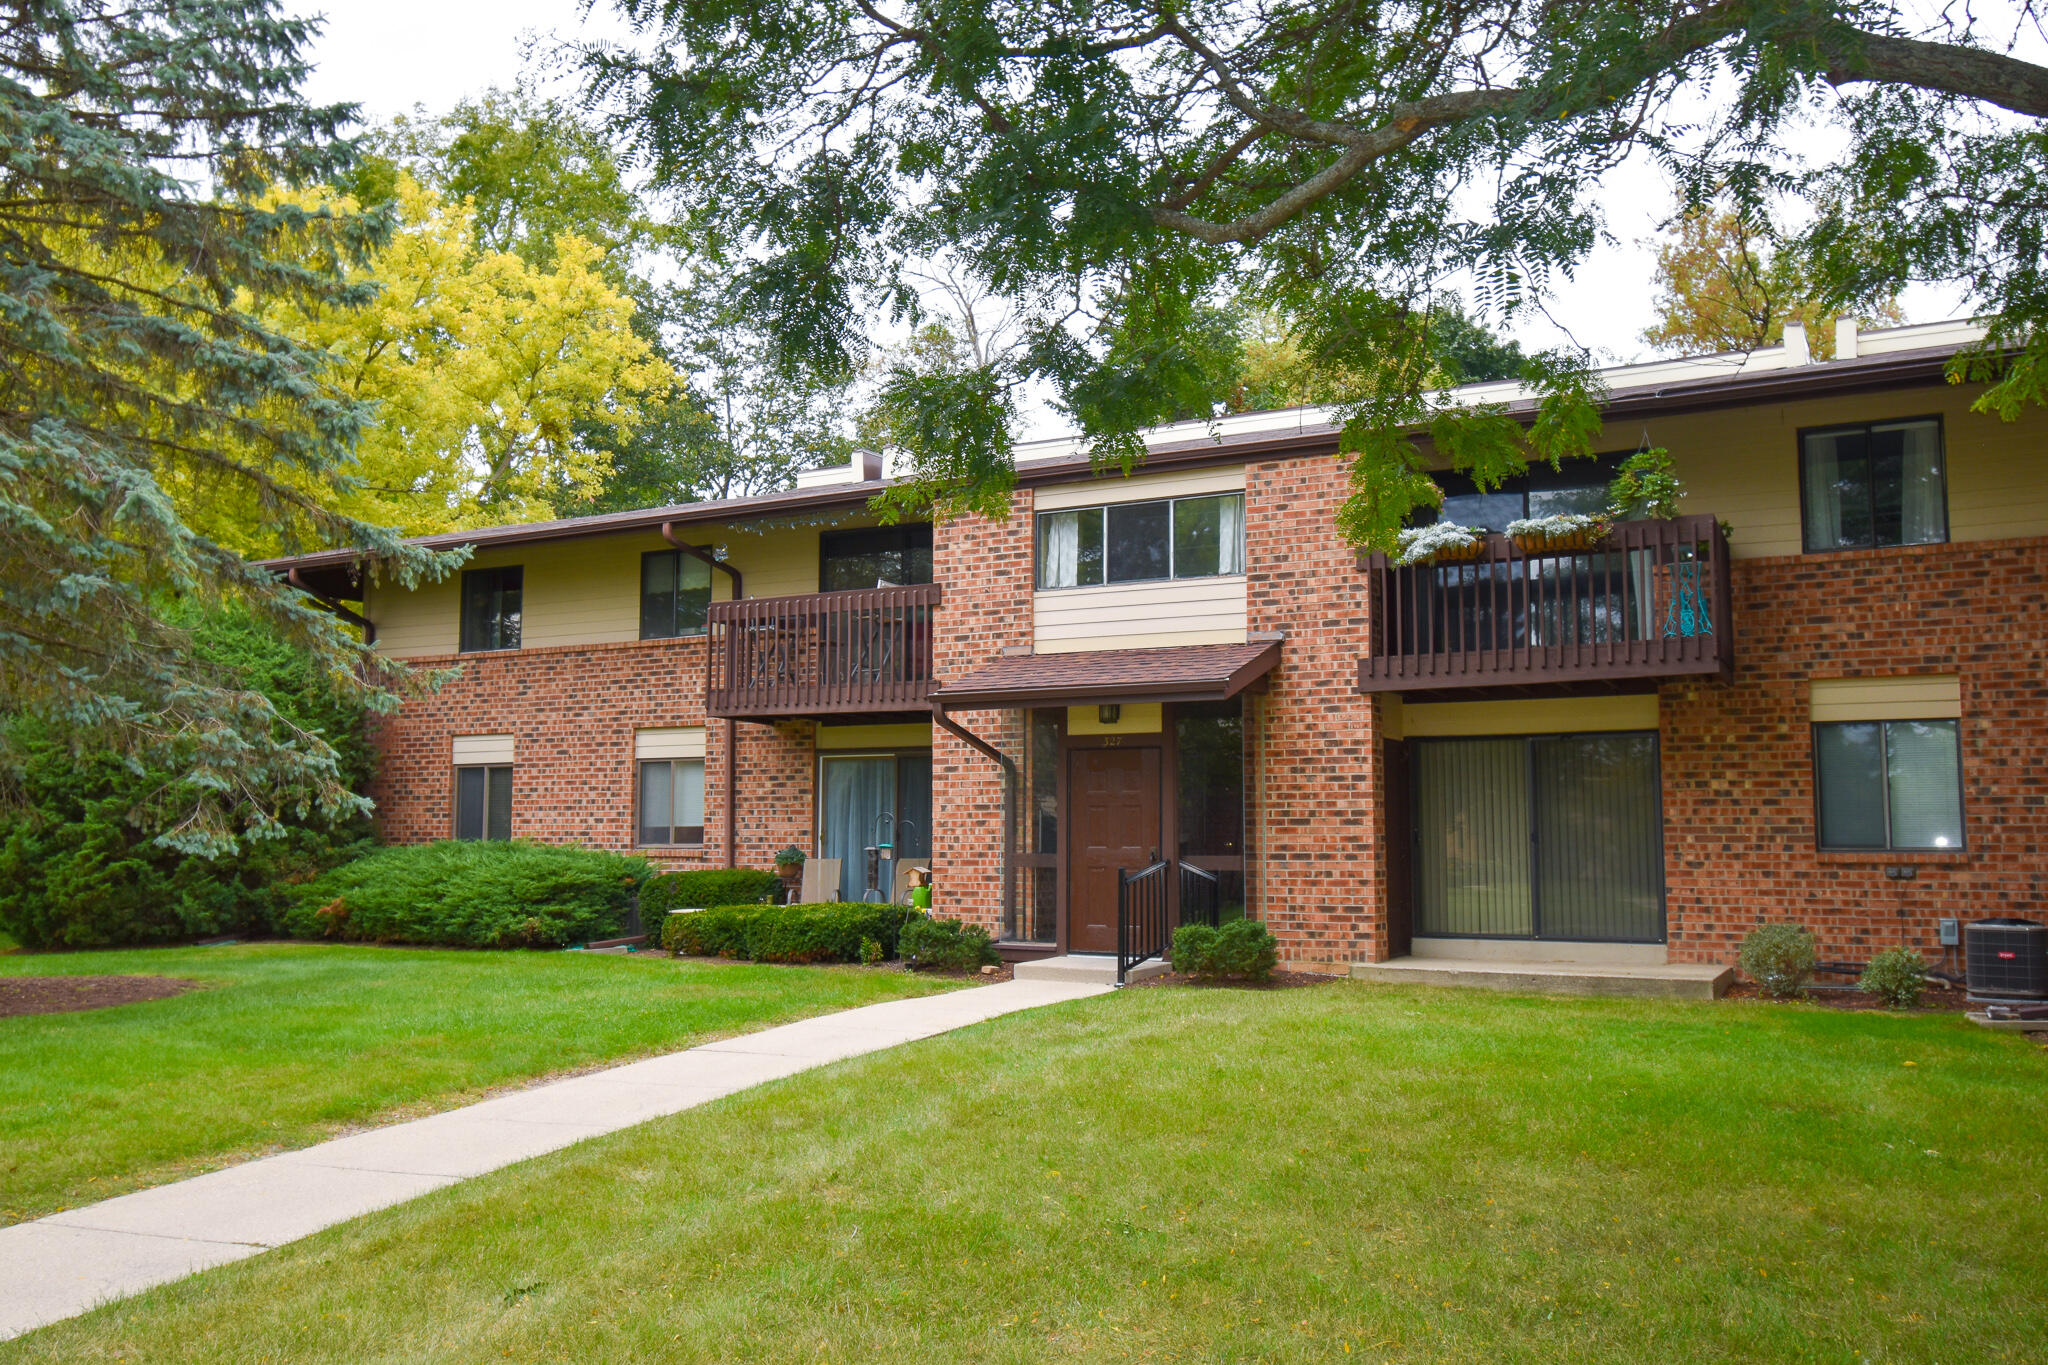 327 Park Hill Dr, Pewaukee, Wisconsin 53072, 1 Bedroom Bedrooms, 5 Rooms Rooms,1 BathroomBathrooms,Condominiums,For Sale,Park Hill Dr,2,1764977